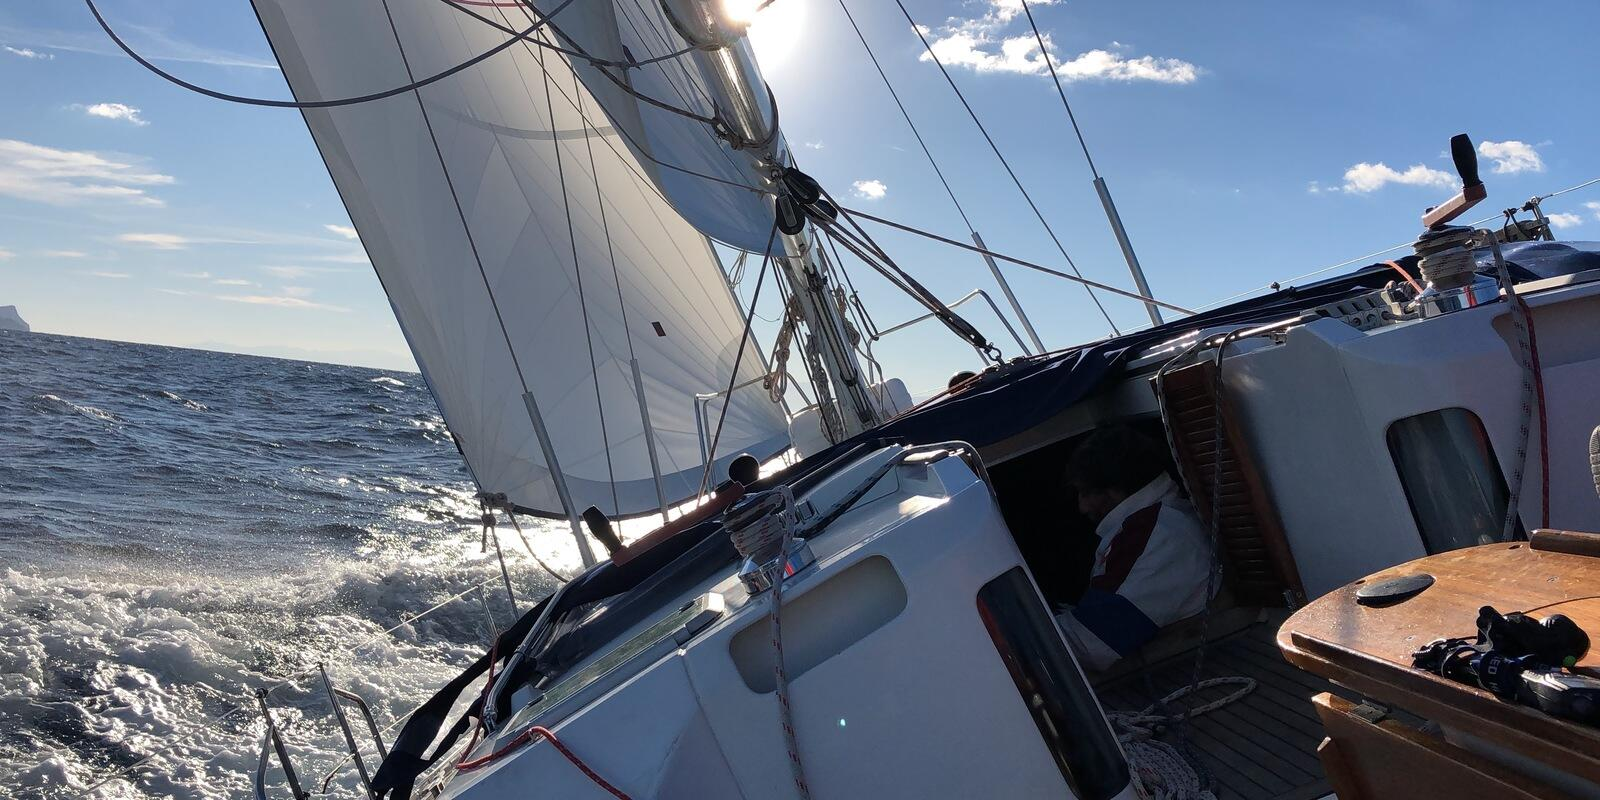 Sailing in winter - Offshore sailing